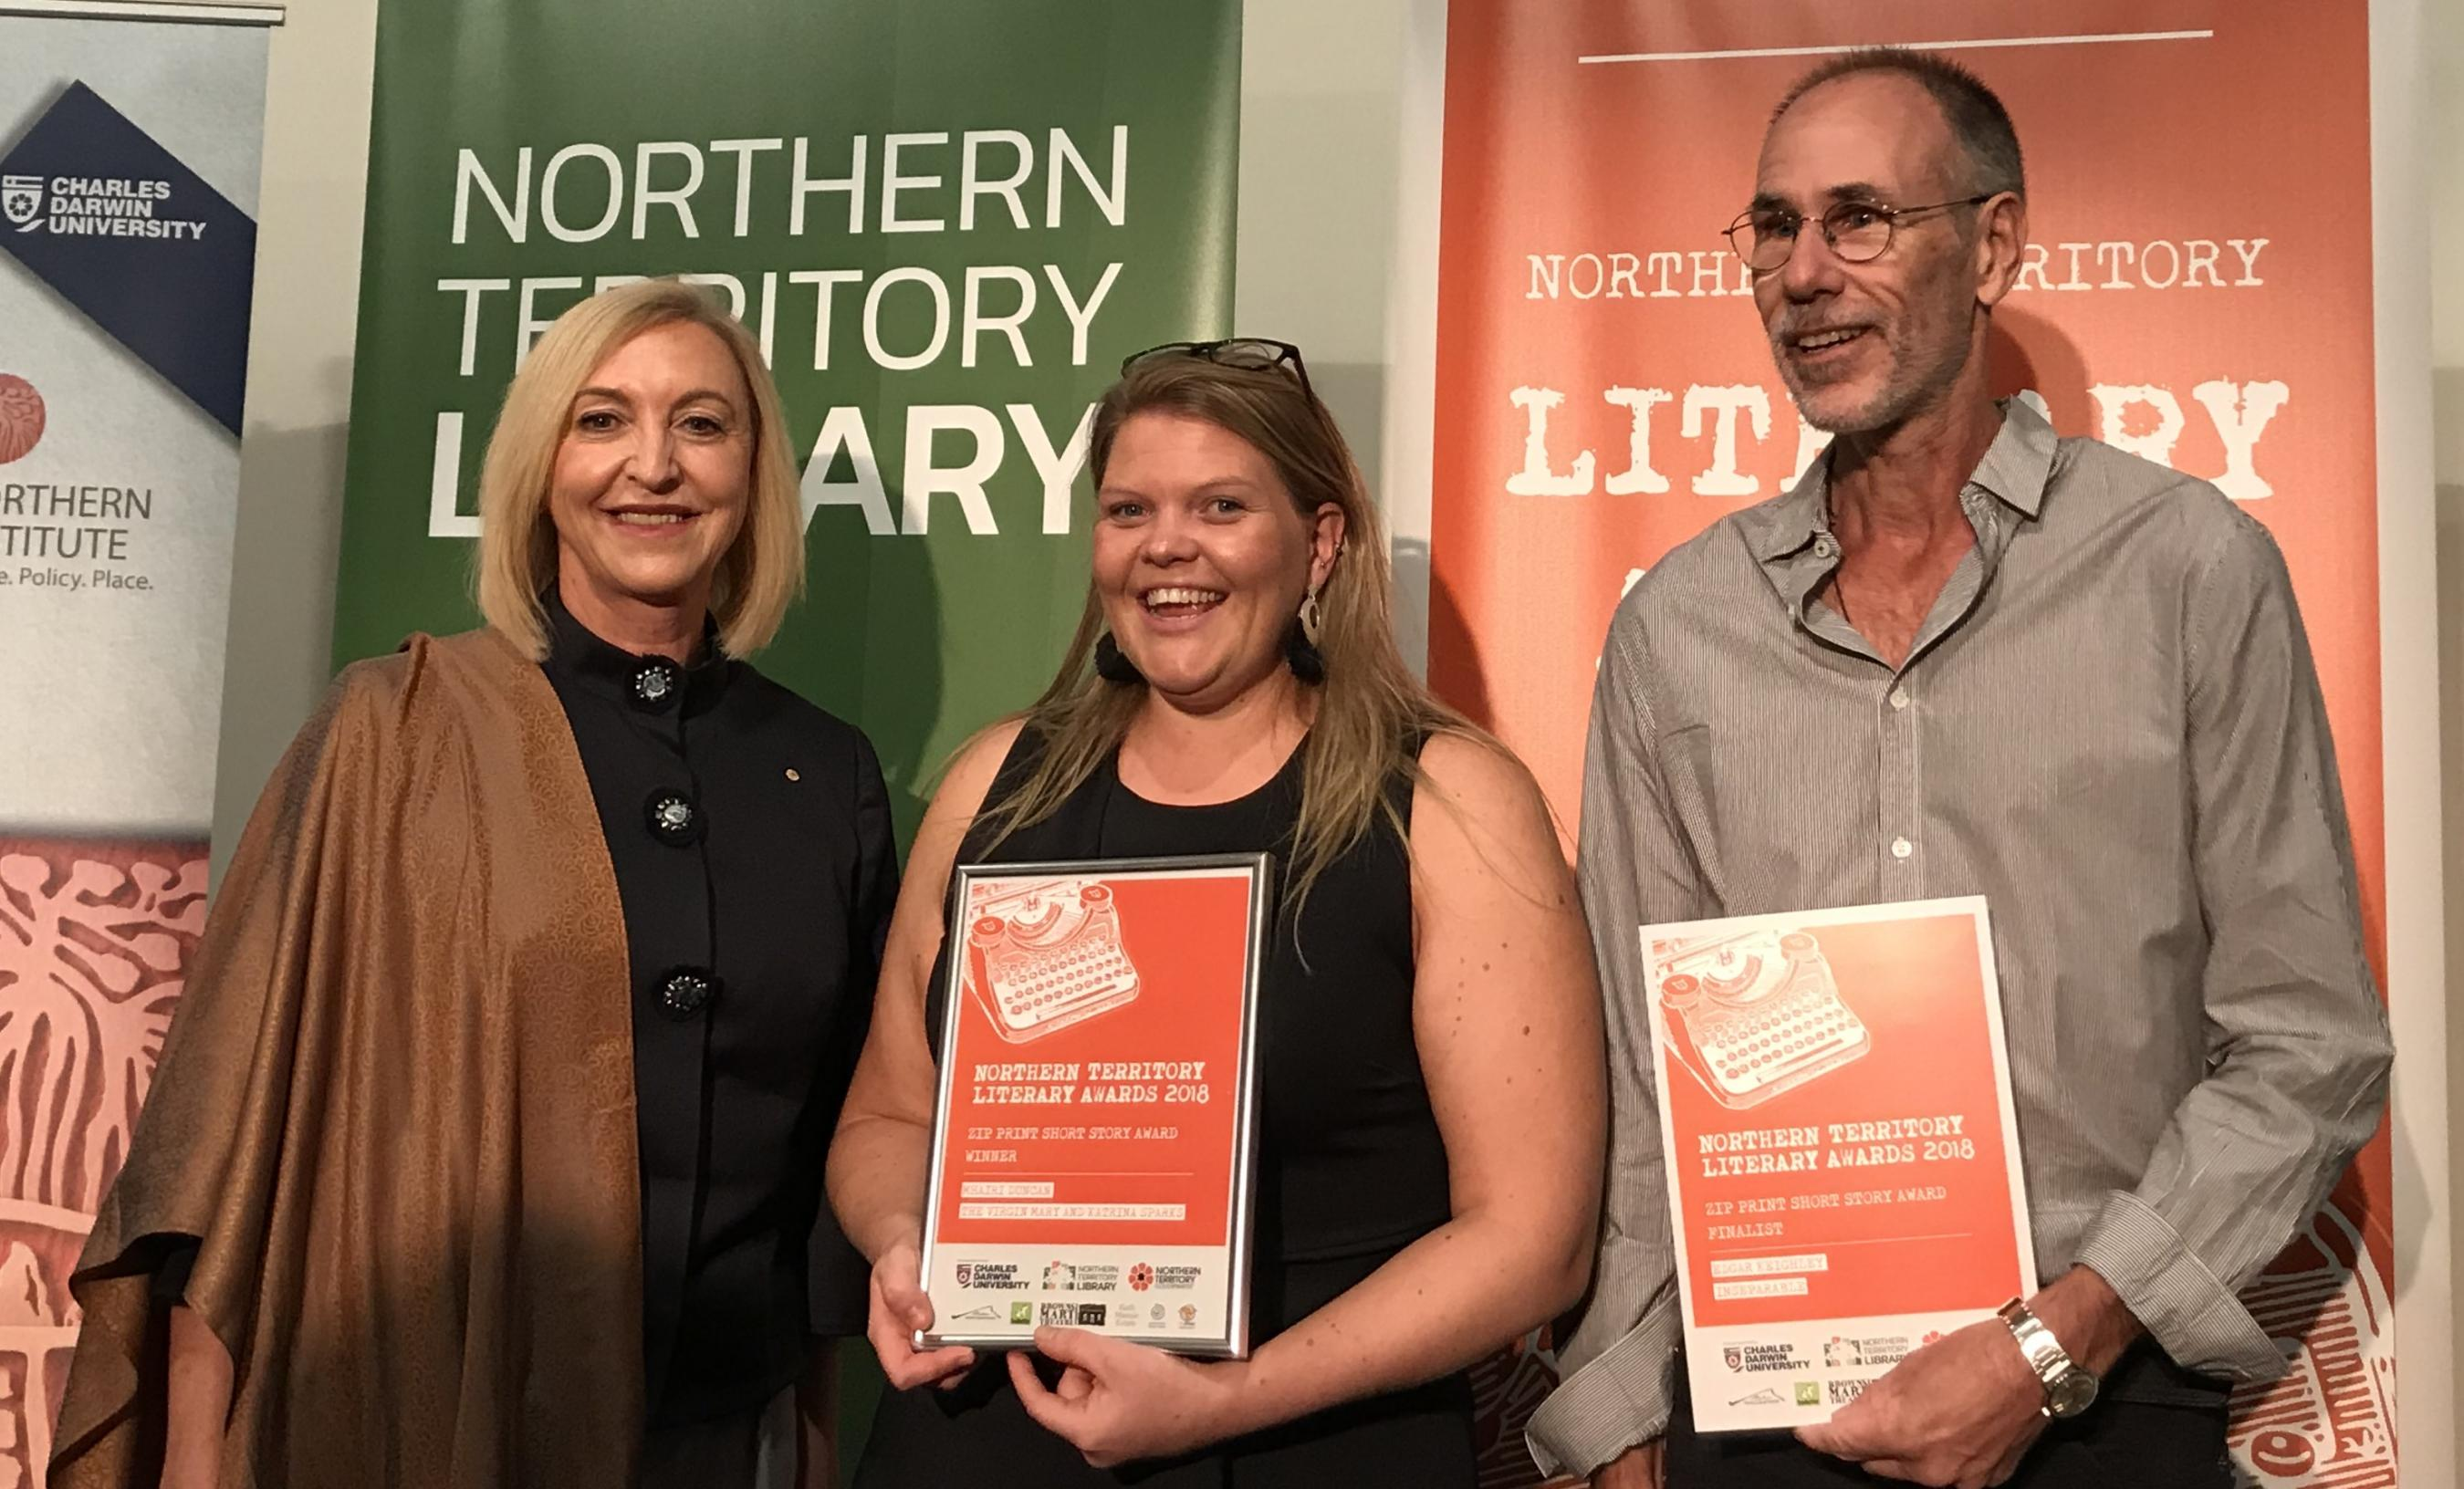 Her Honour the Hounourable Vicki O'Halloran Administrator of the Northern Territory with Mharii Duncan winner of the Short Story Award and Edgar Keighley finalist in the Poetry Award. Event banners in the background.